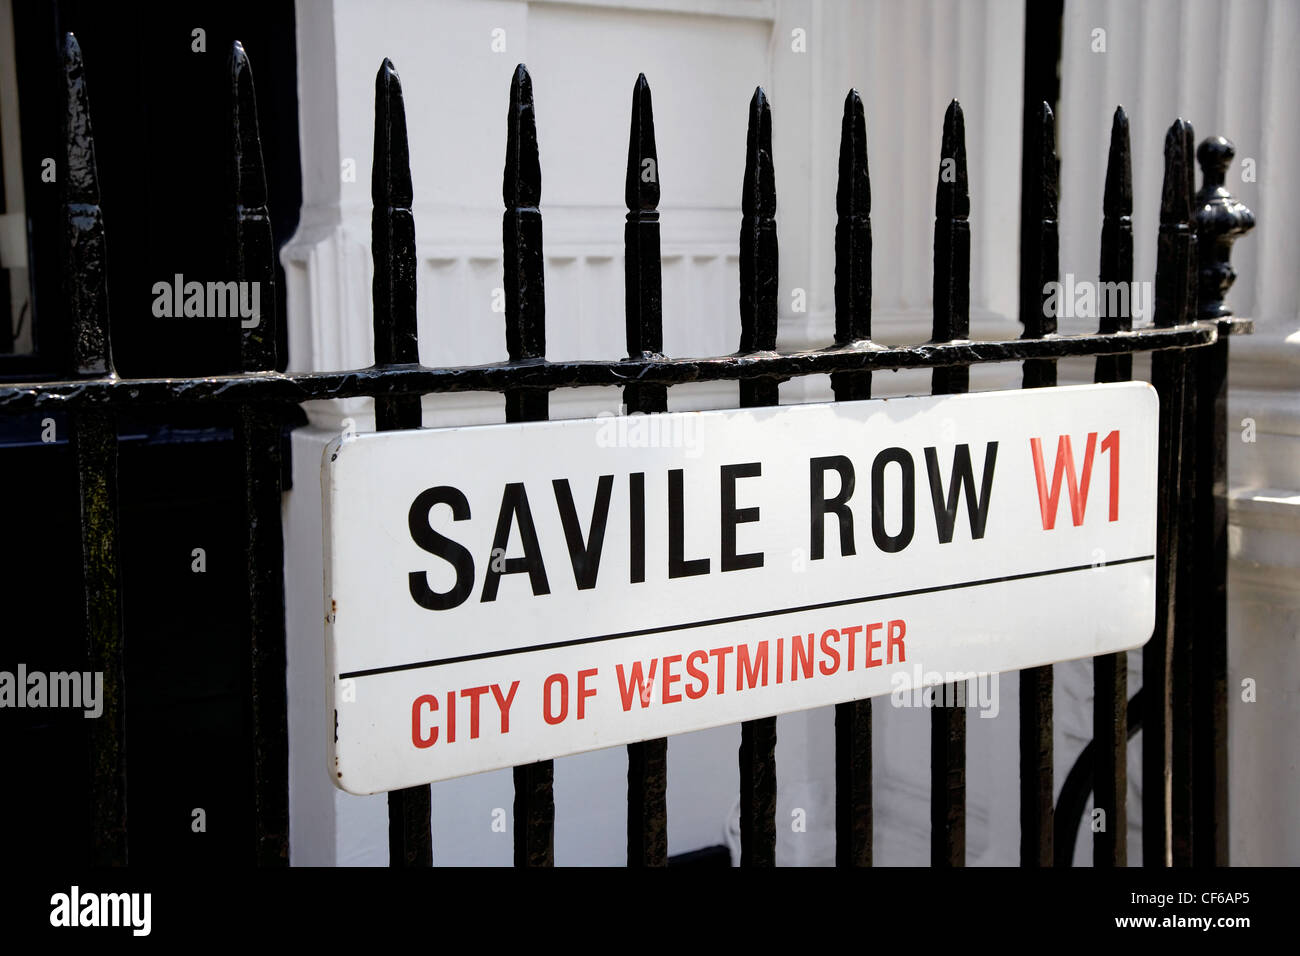 A close up of a Saville Row street sign in the West End. - Stock Image